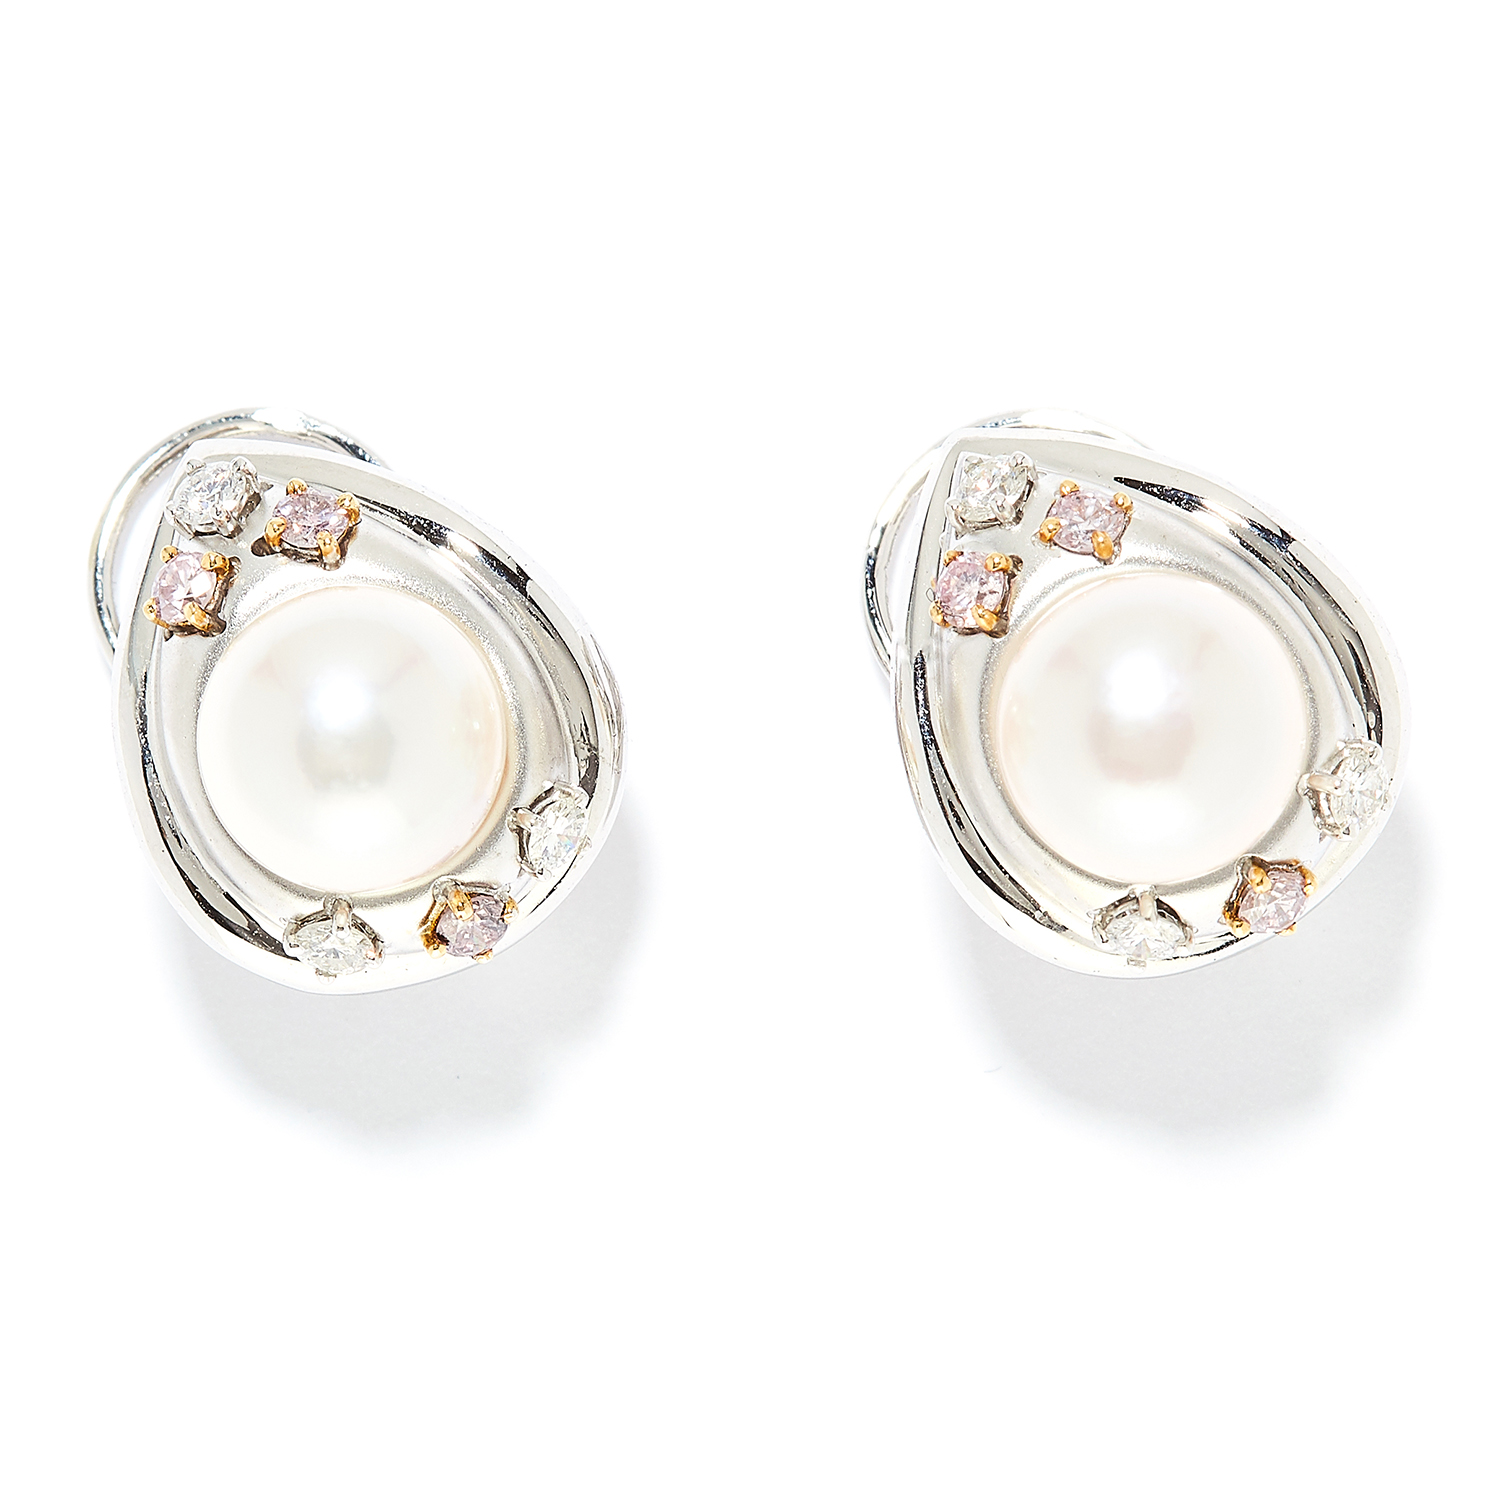 PEARL, DIAMOND AND FANCY PINK DIAMOND EARRINGS in 18ct white gold, each set with a pearl of